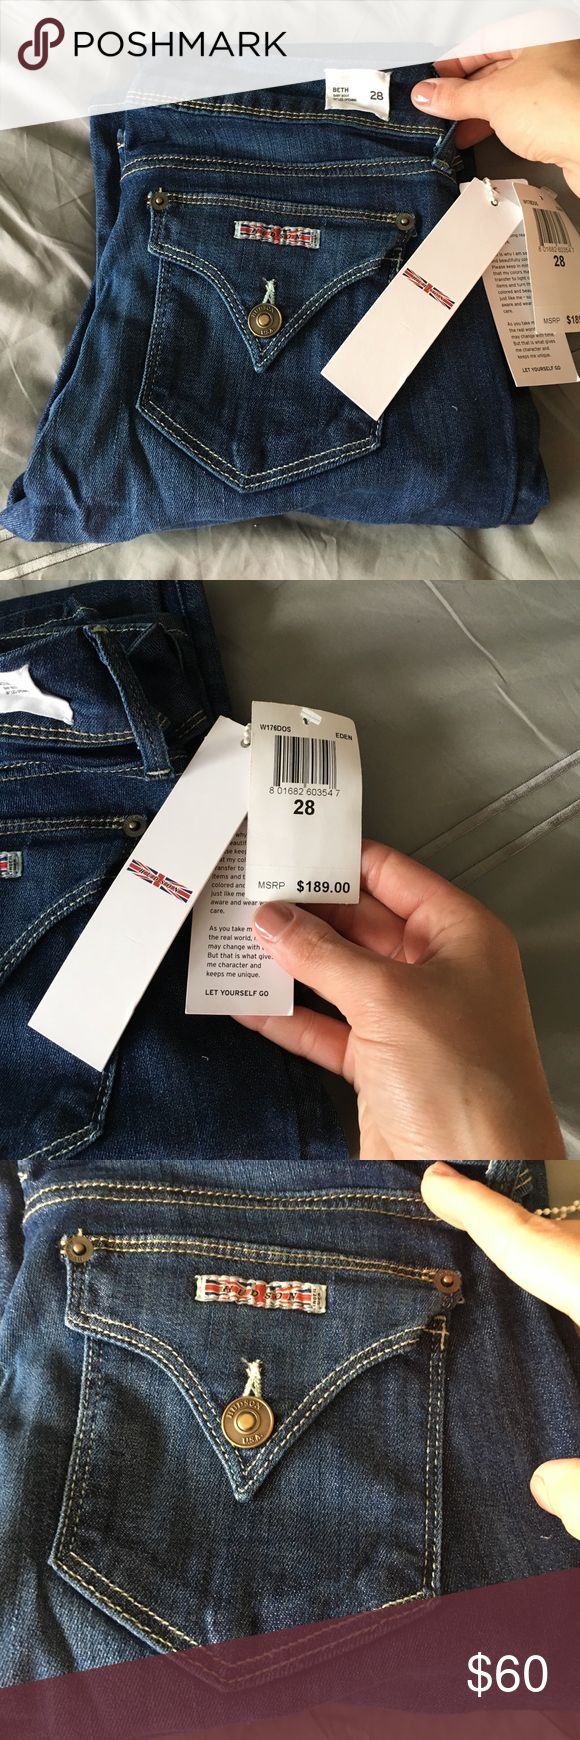 Hudson Jeans size 28 Beth boot cut NWT Hudson brand Jeans-Beth baby bootcut size 28. Double button front closure with back flap pockets. Hudson Jeans Jeans Boot Cut